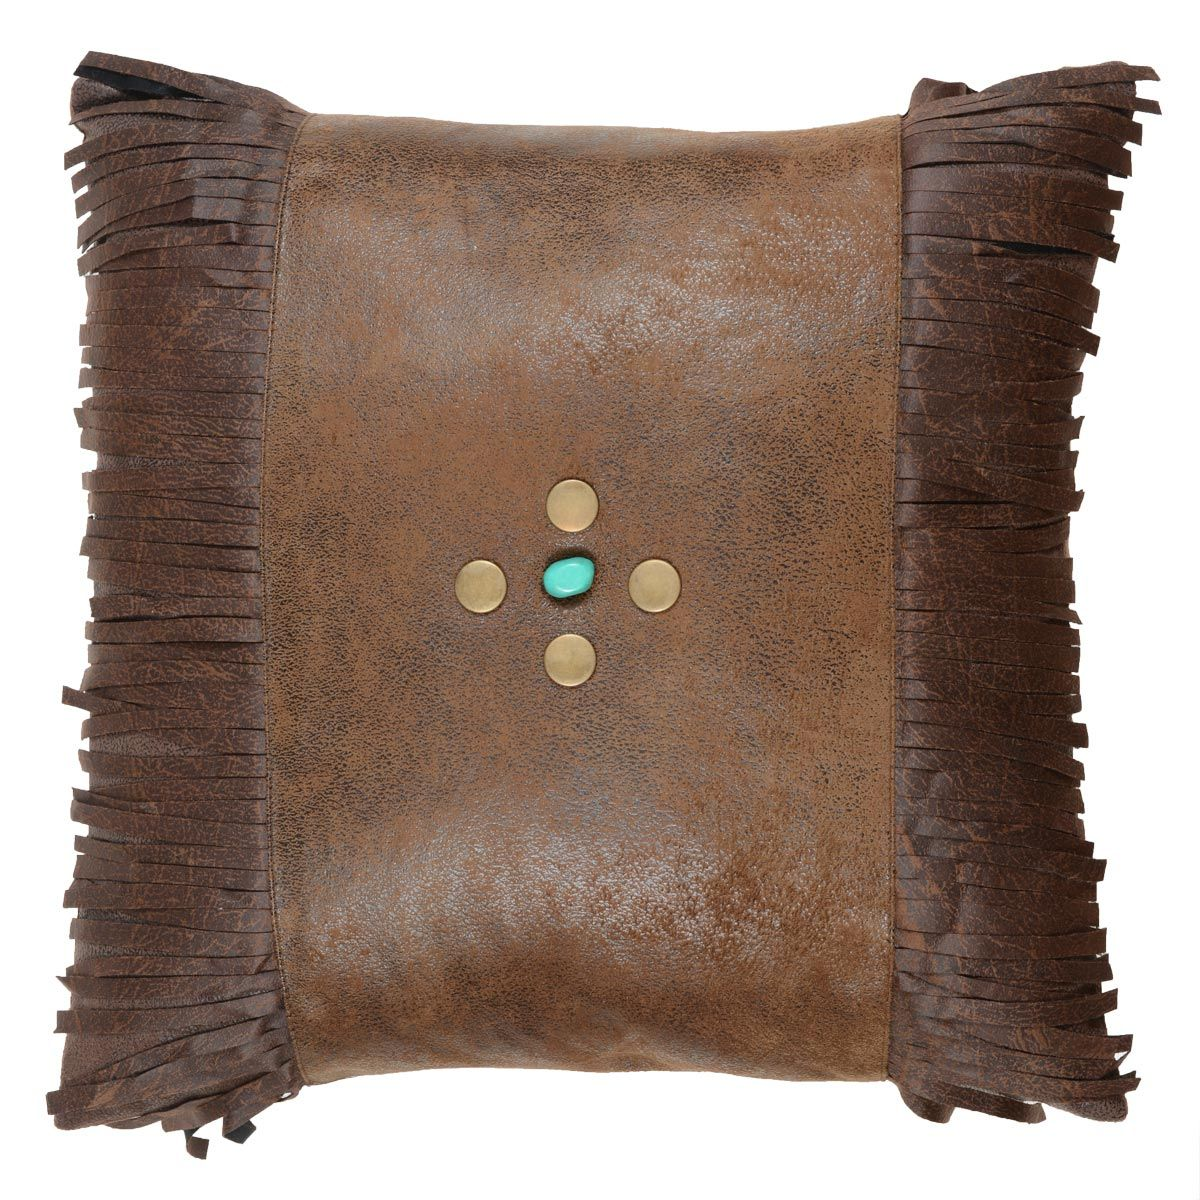 Canyon Shadows Brown Fringed Pillow - BACKORDERED UNTIL 7/9/2021